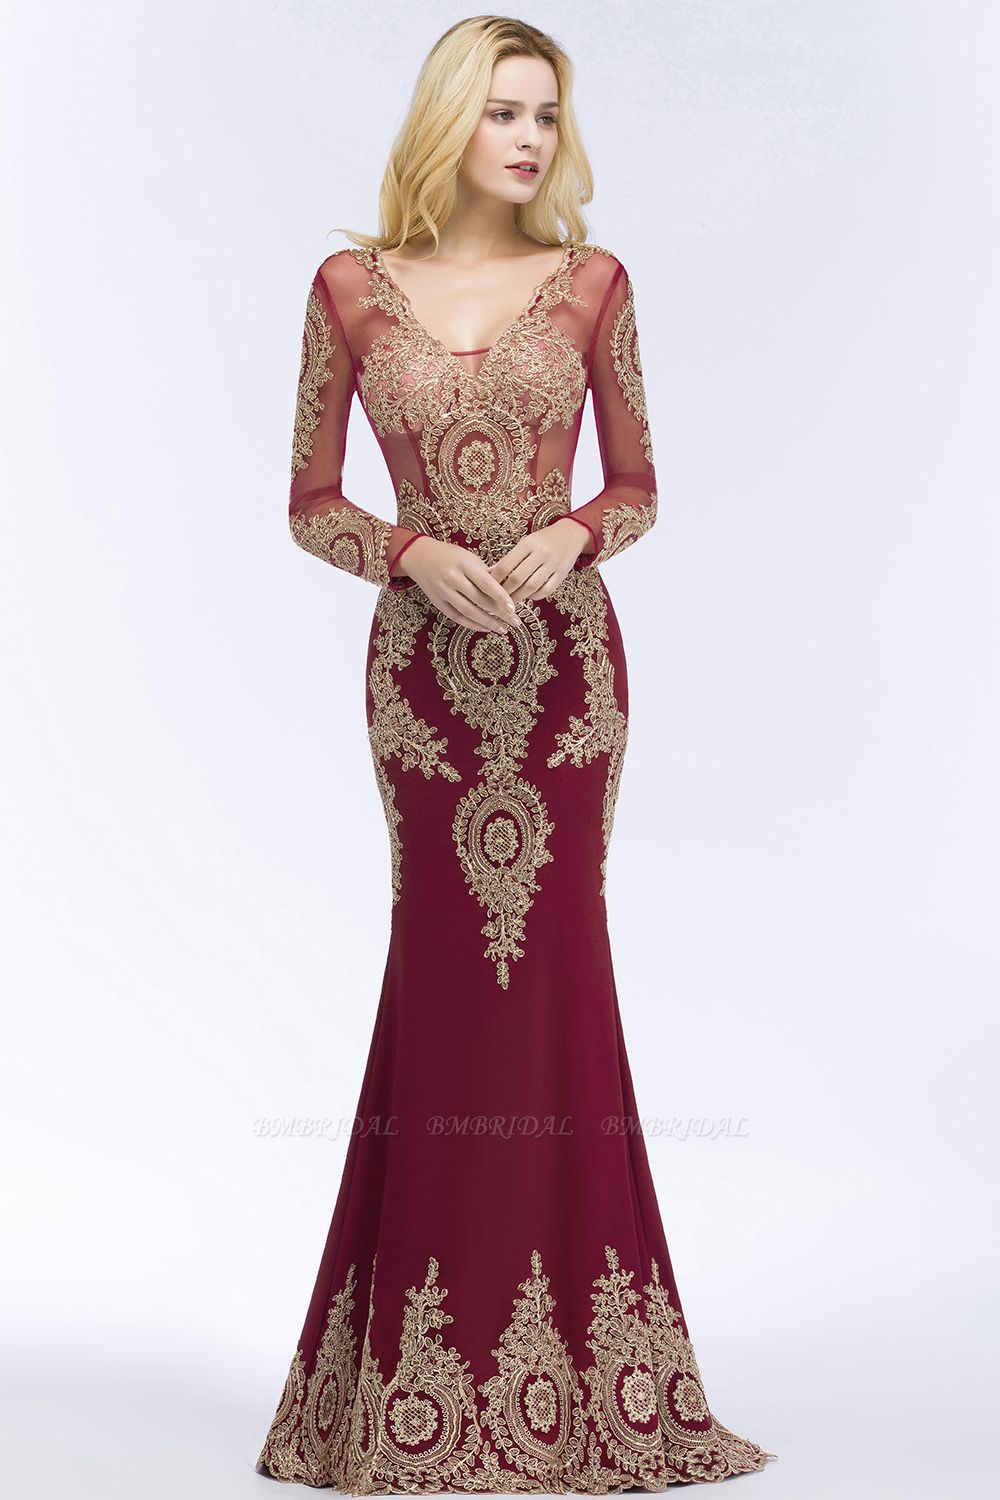 BMbridal Glamorous Long Sleeve Mermaid Prom Dress Long Evening Party Gowns With Lace Appliques